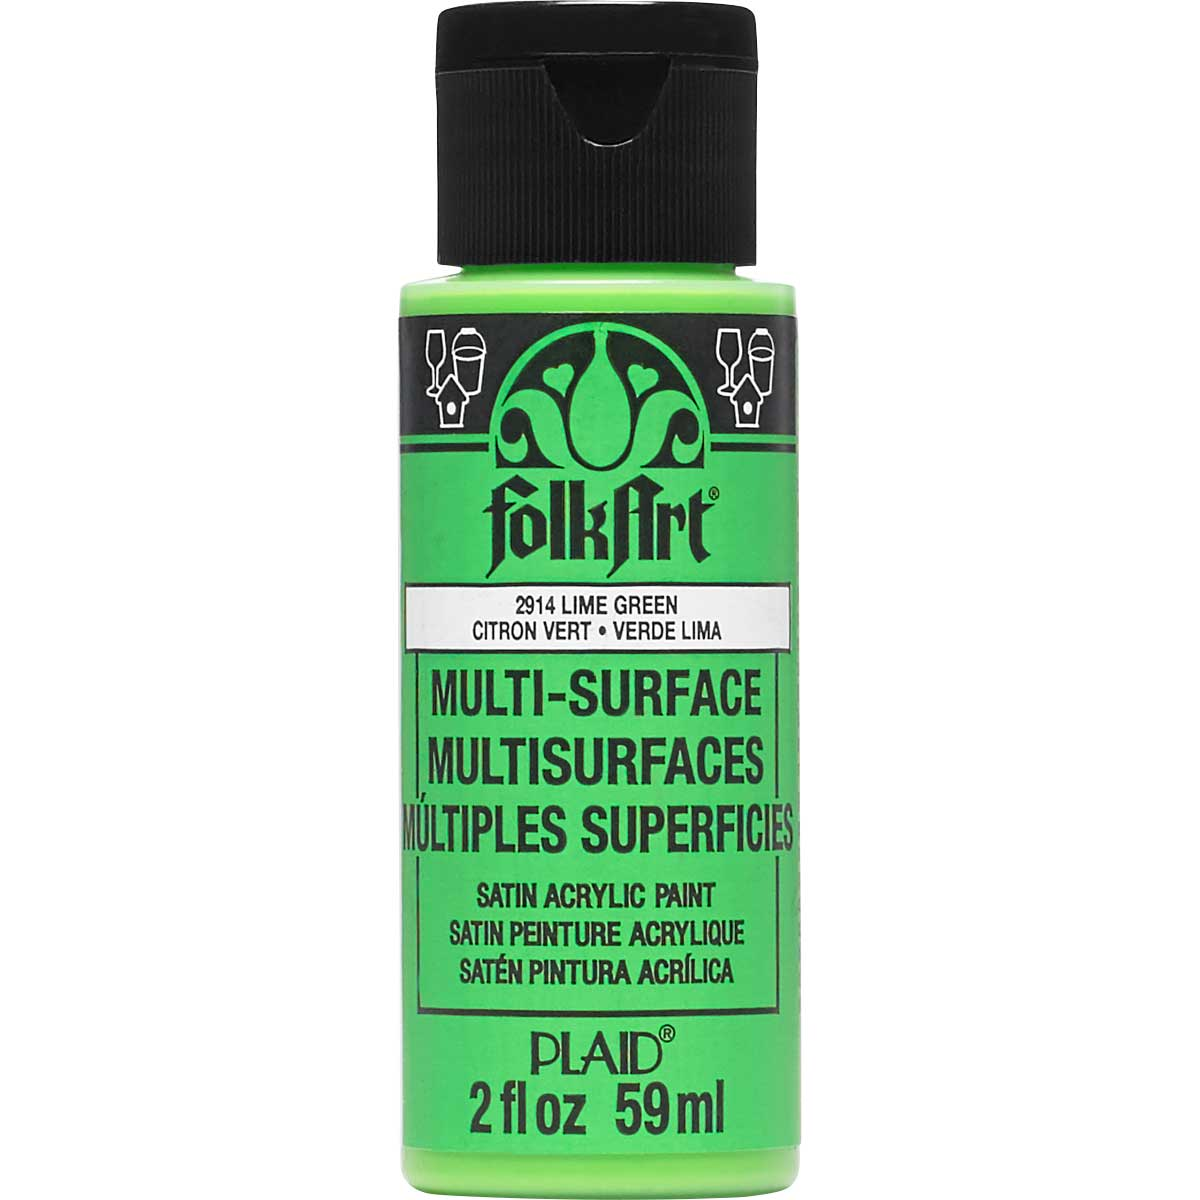 FolkArt ® Multi-Surface Satin Acrylic Paints - Lime Green, 2 oz. - 2914